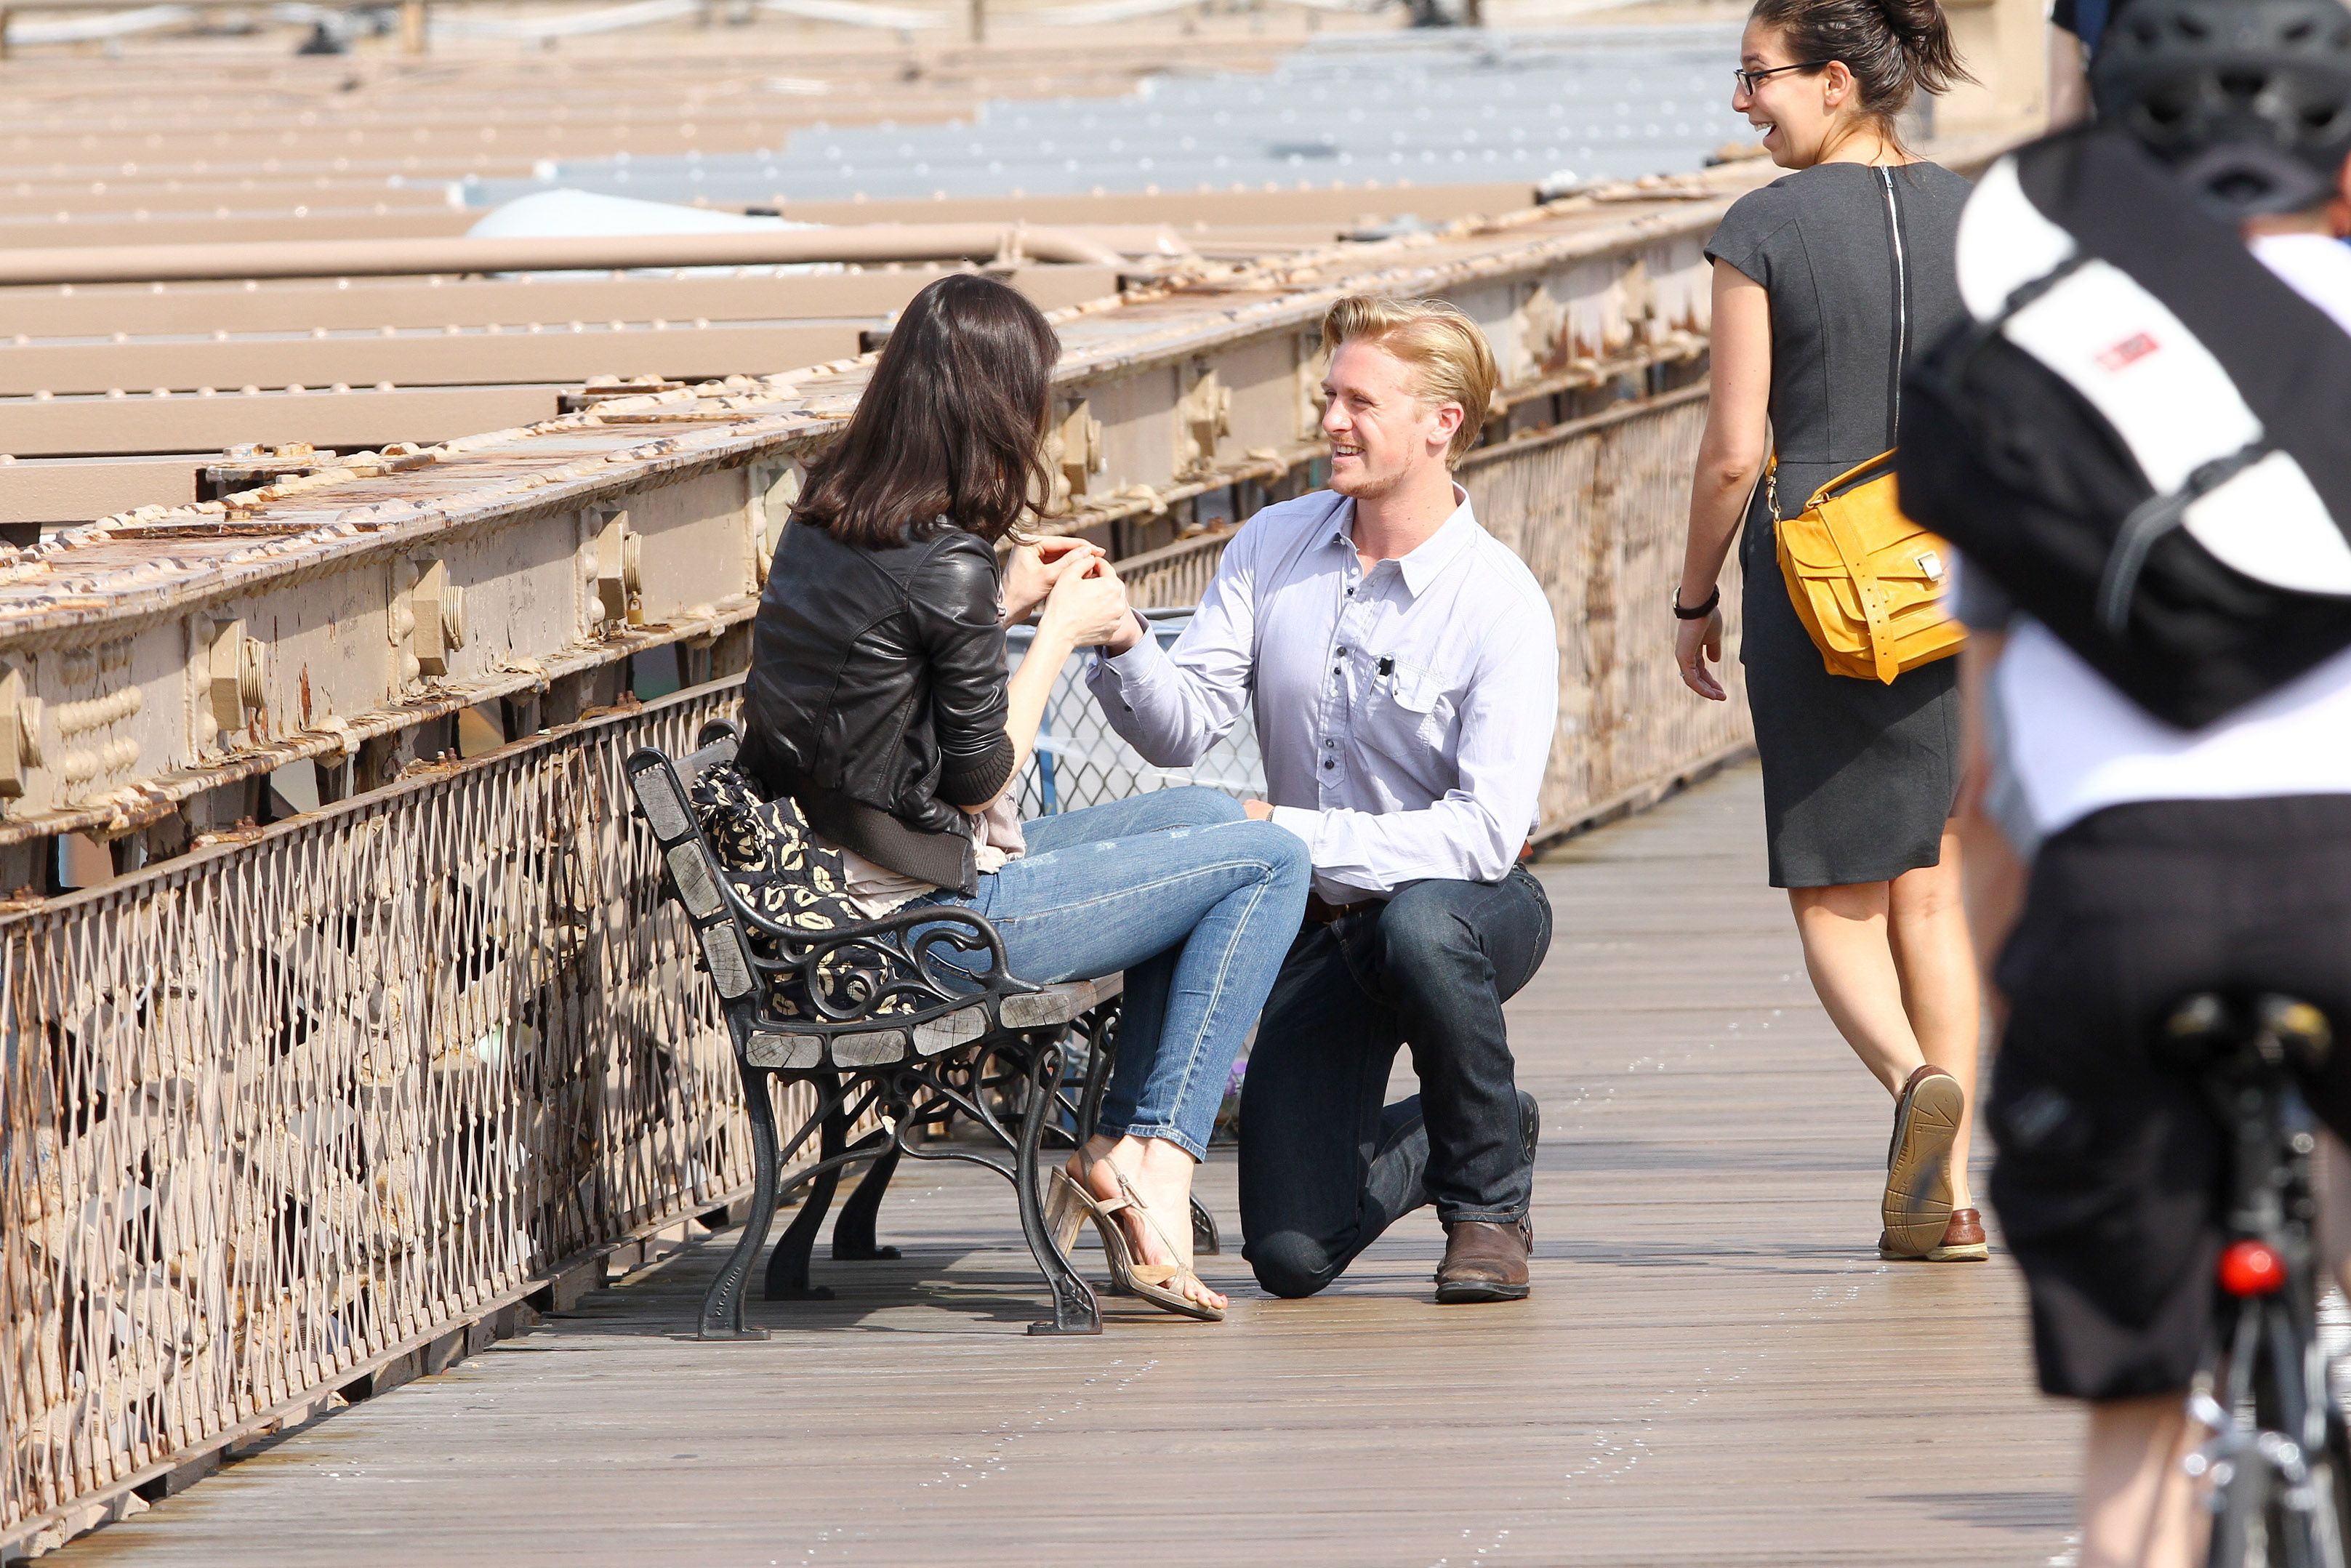 Groom popping question on pier